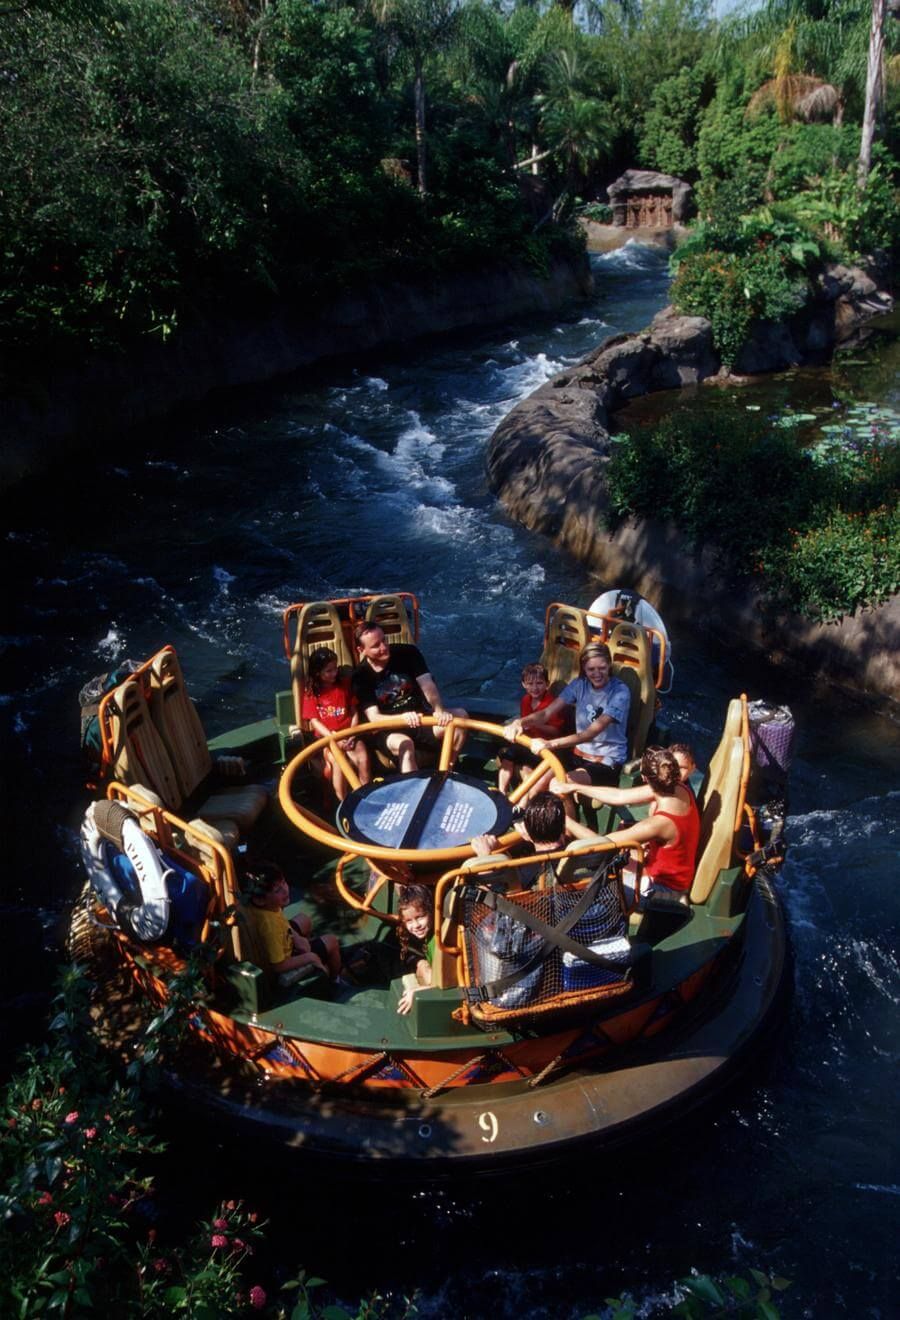 Kali River Rapids® Attraction